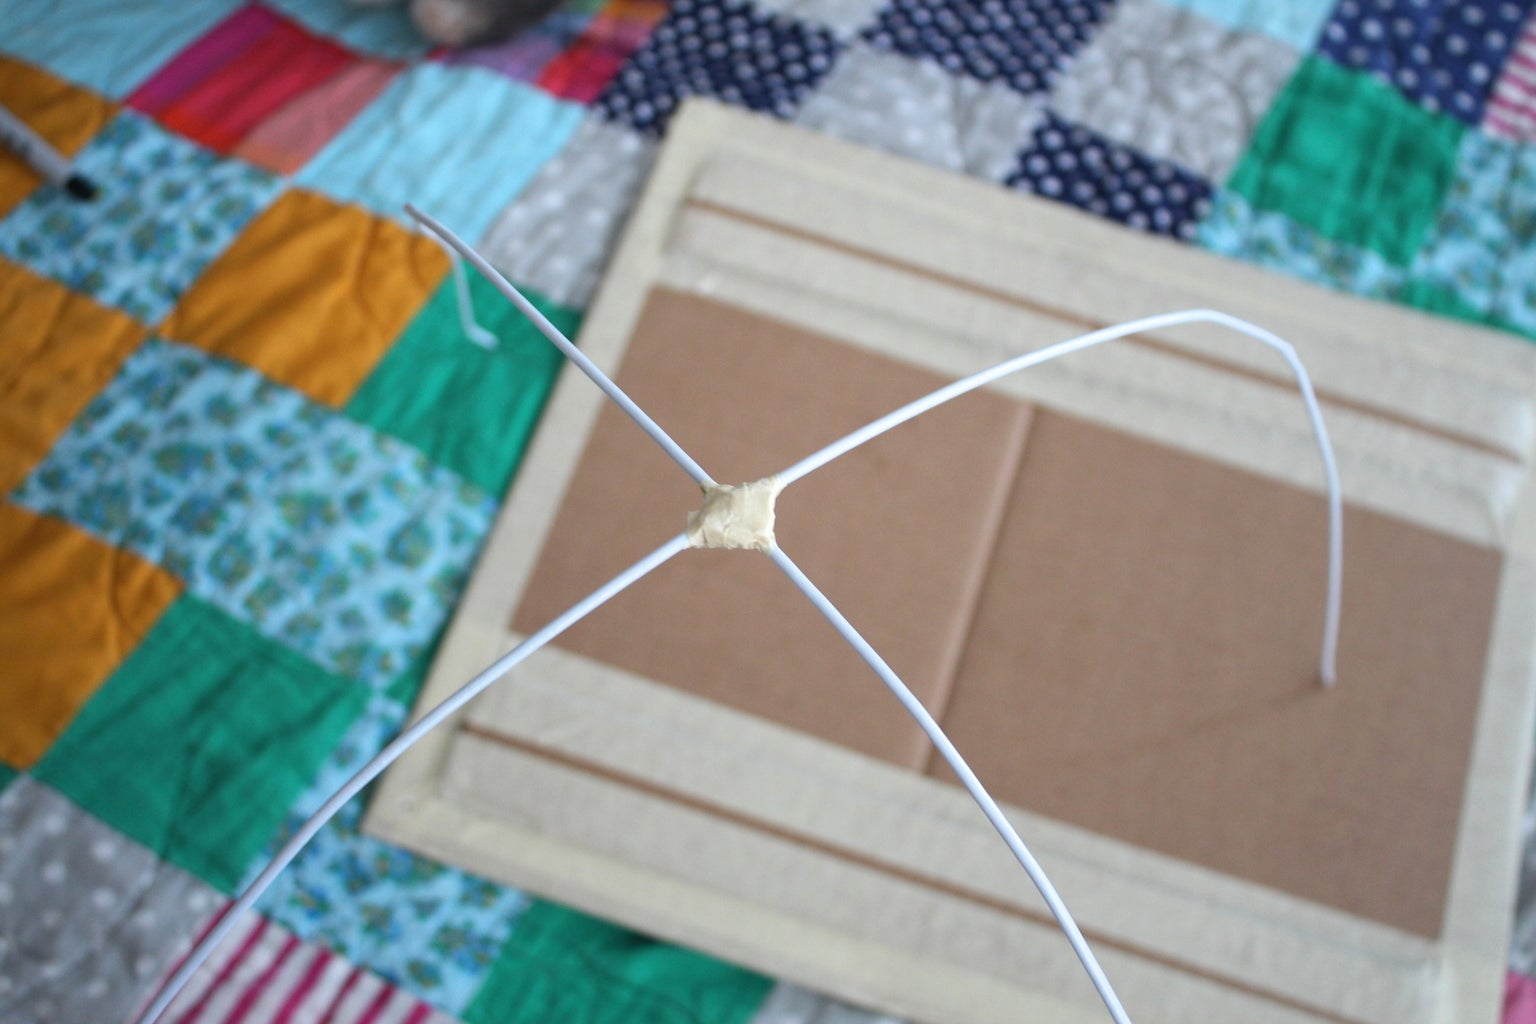 Tape the Two Hangers Together